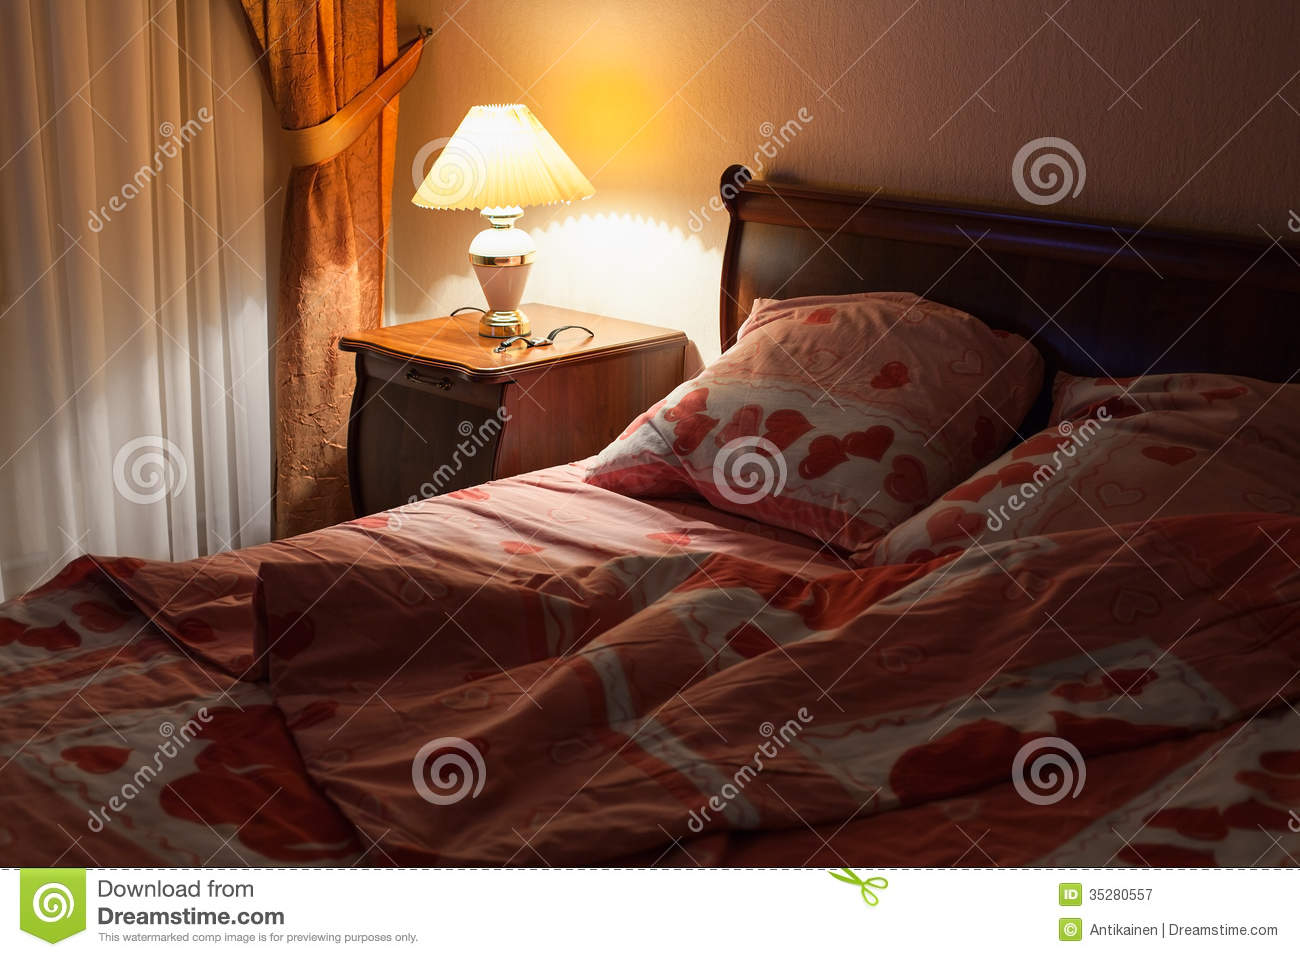 Bedroom at night time - Bedroom Interior With Table Lamp At Night Time